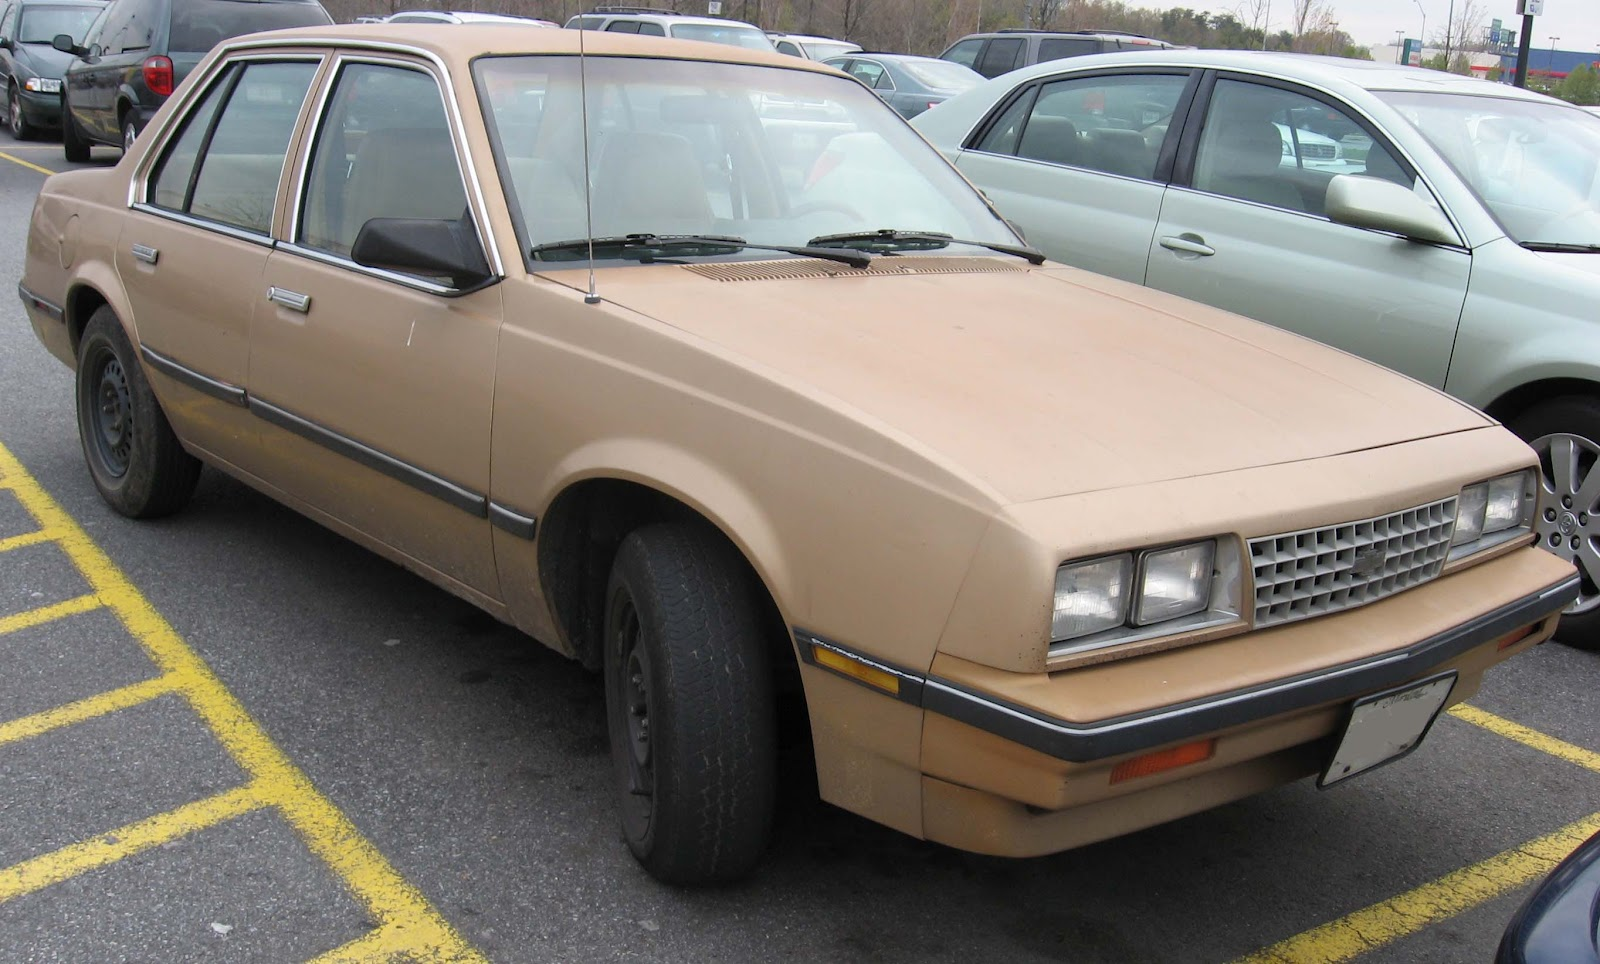 Or Fenders And Rims As Is The Case Of Our Charmingly Beat Up 88 Z24 Oh How I Once Loved You 1988 Cavalier